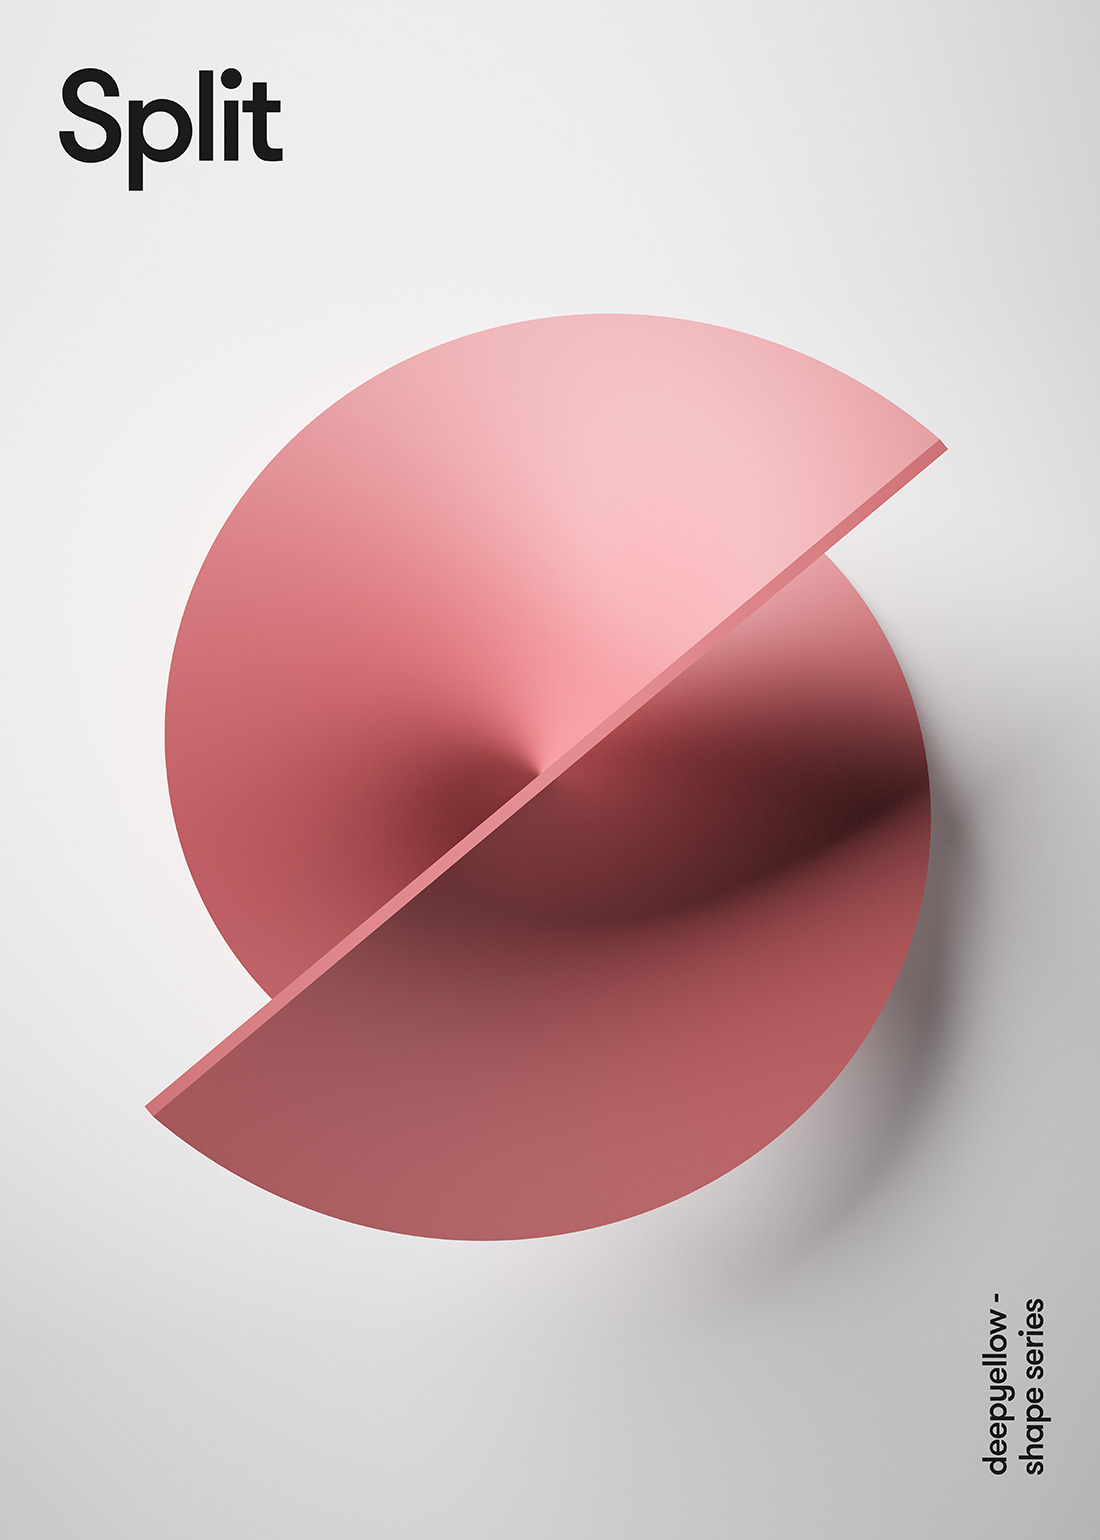 Minimalist Posters by Deepyellow – Fubiz Media